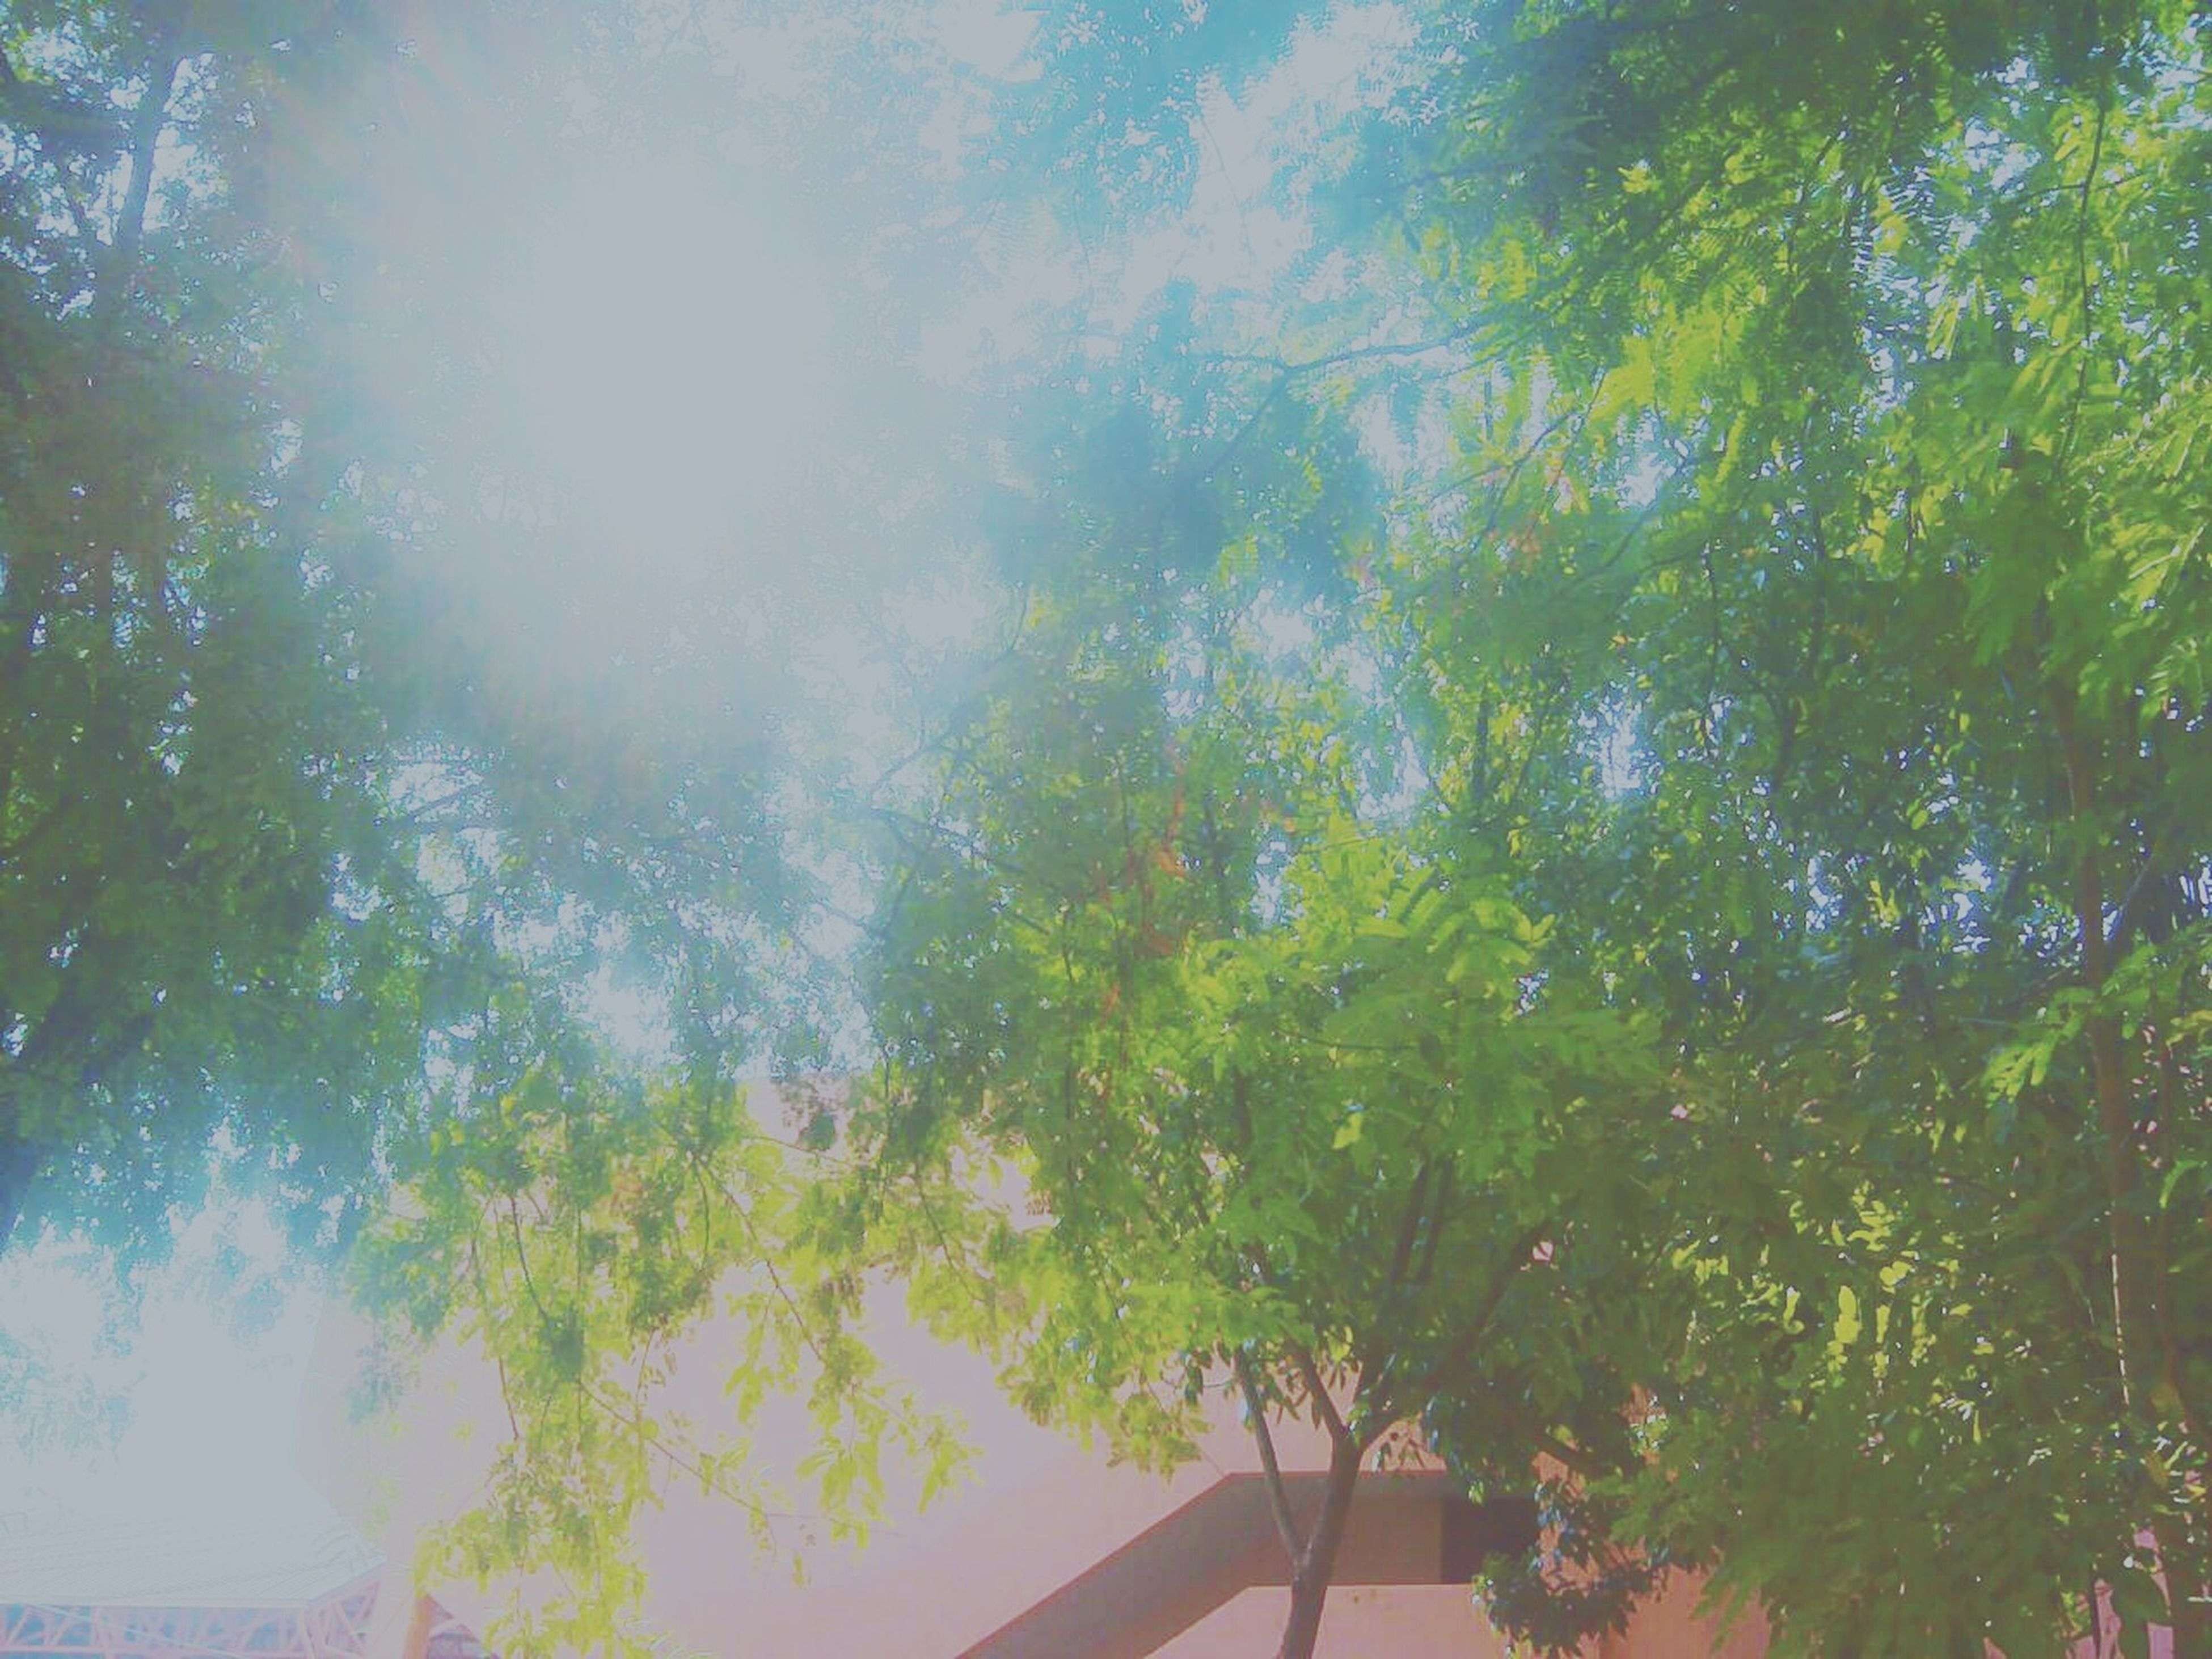 tree, low angle view, growth, sunlight, branch, sunbeam, nature, tranquility, sun, beauty in nature, sky, day, sunny, green color, lens flare, outdoors, no people, tranquil scene, scenics, tree trunk